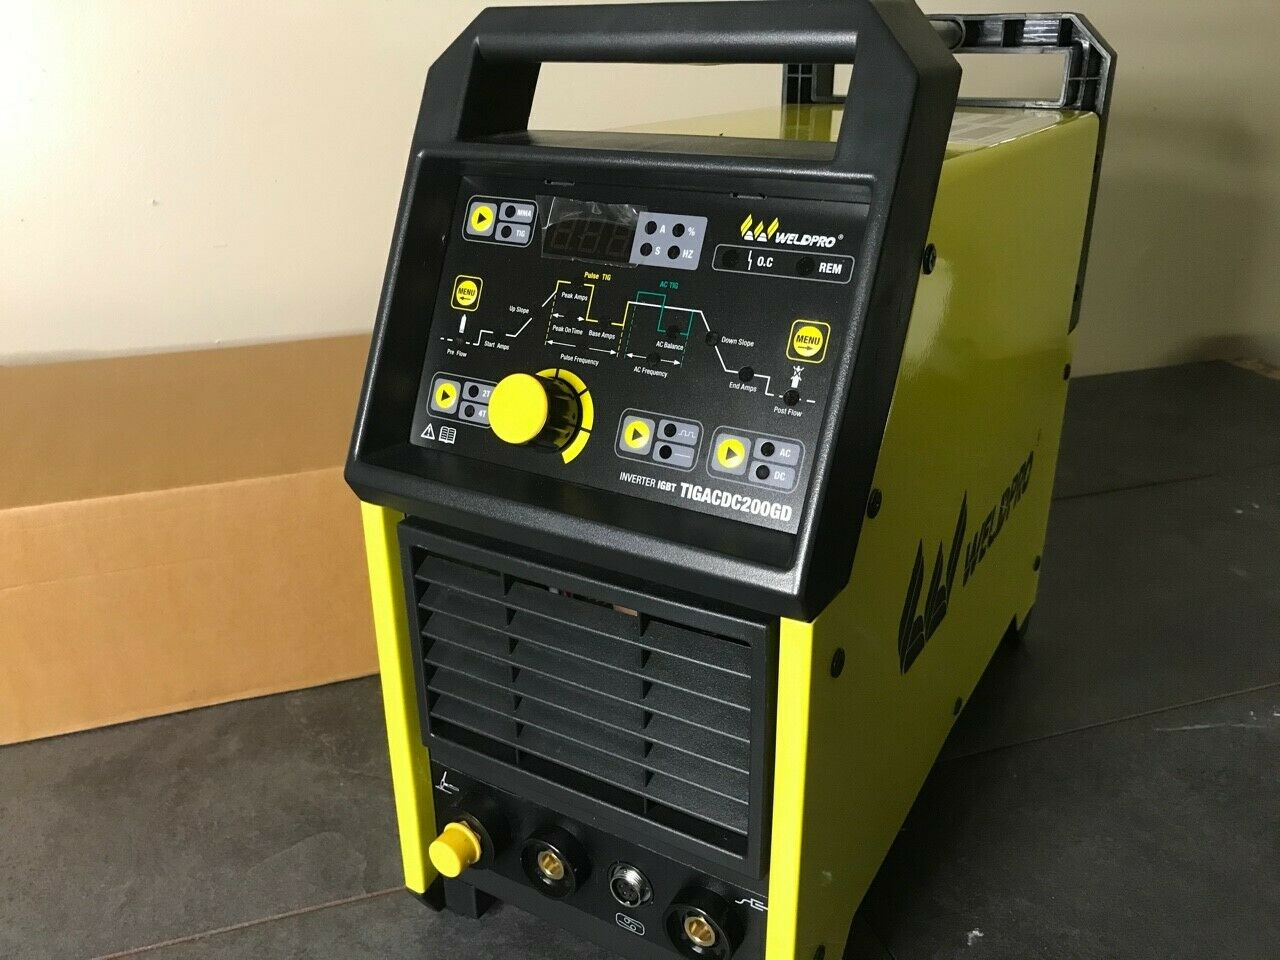 2020 Weldpro Digital TIG 200GD ACDC 200 Amp Tig/Stick Welder w/Pulse CK 17 Torch. Buy it now for 488.00